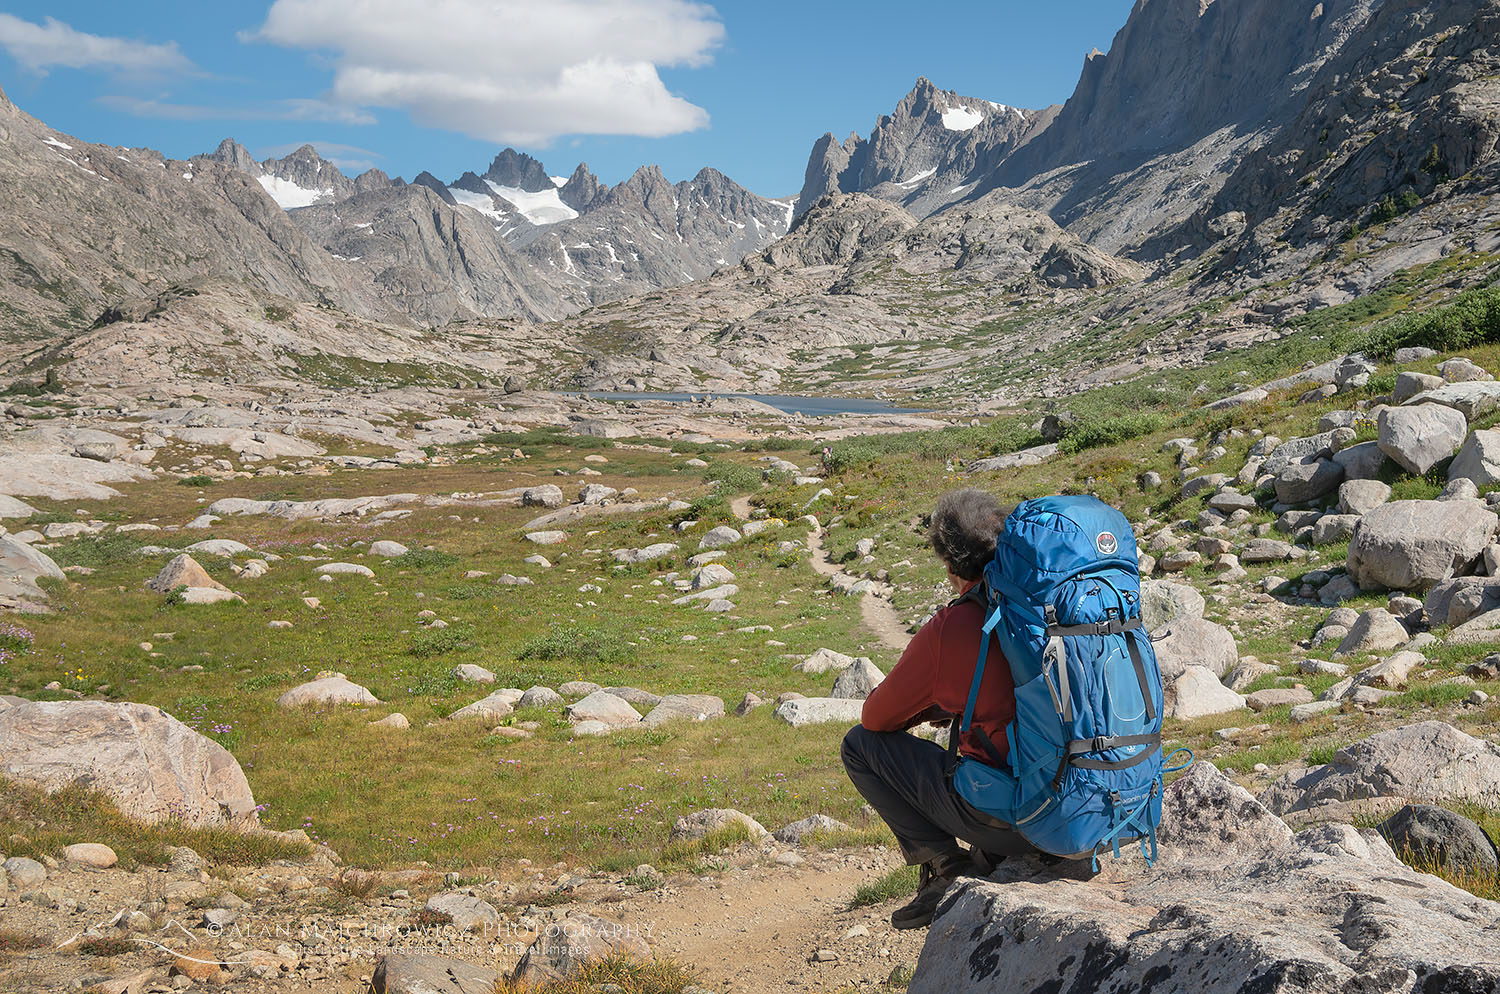 Backpacker on Titcomb Basin Trail Wind River Range Wyoming Backpacking Photography Gear Tips